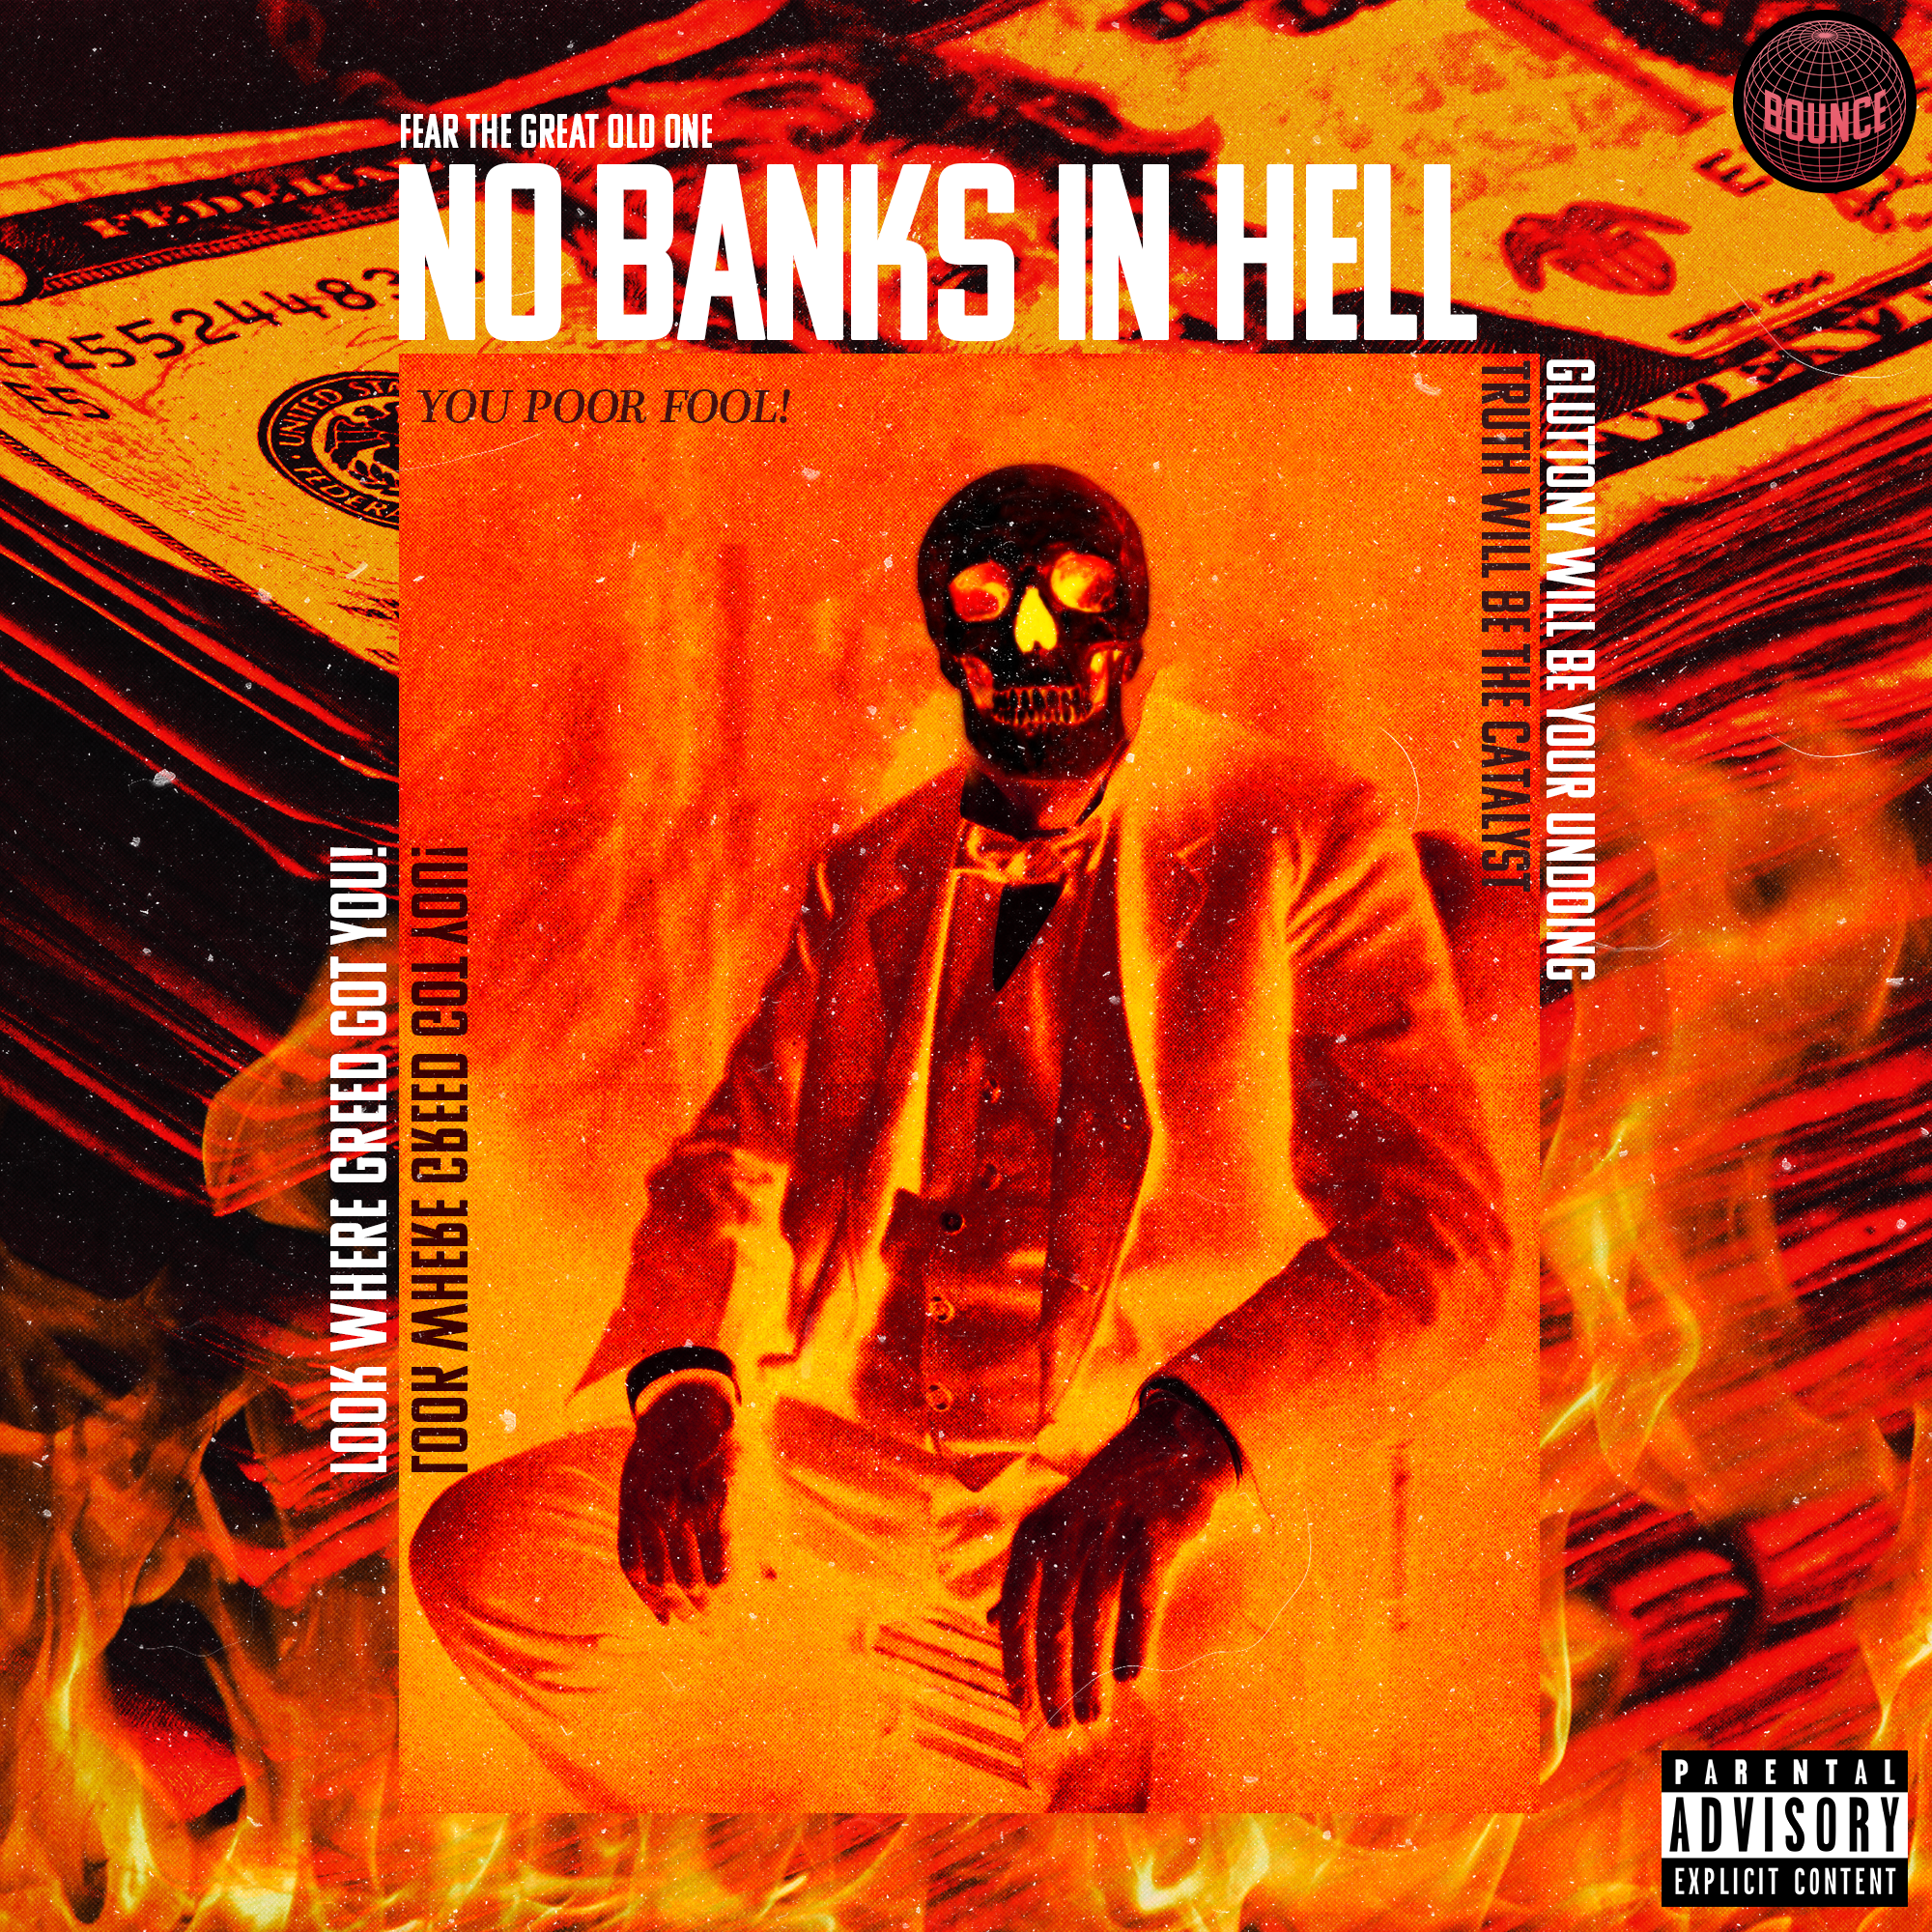 NO BANKS IN HELL